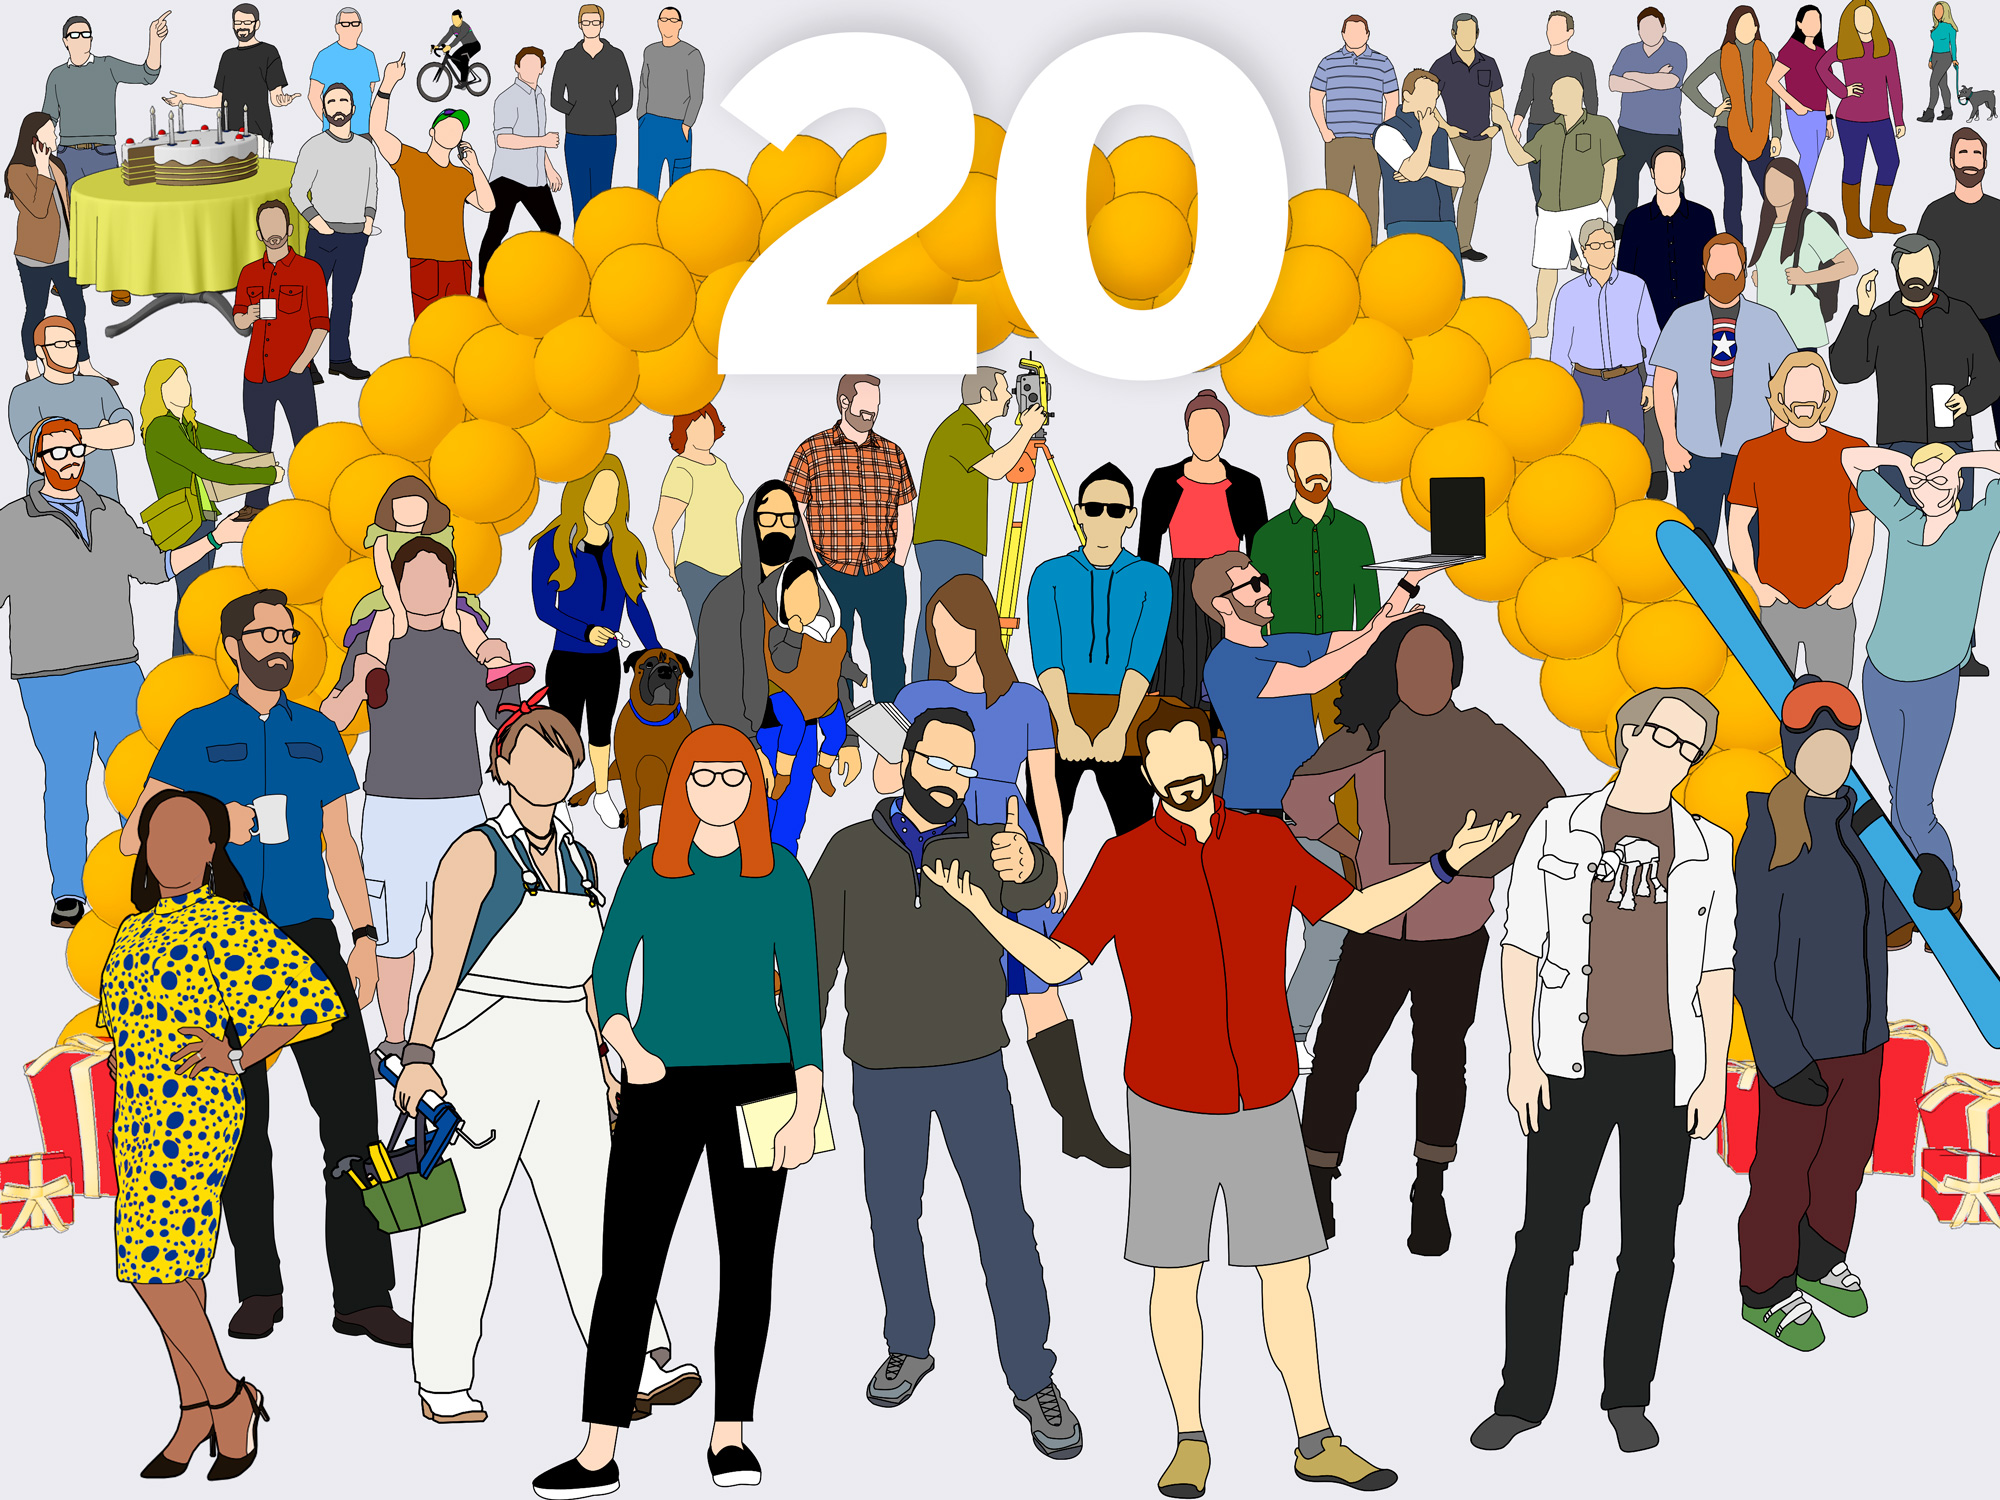 SketchUp Turns 20 in 2020